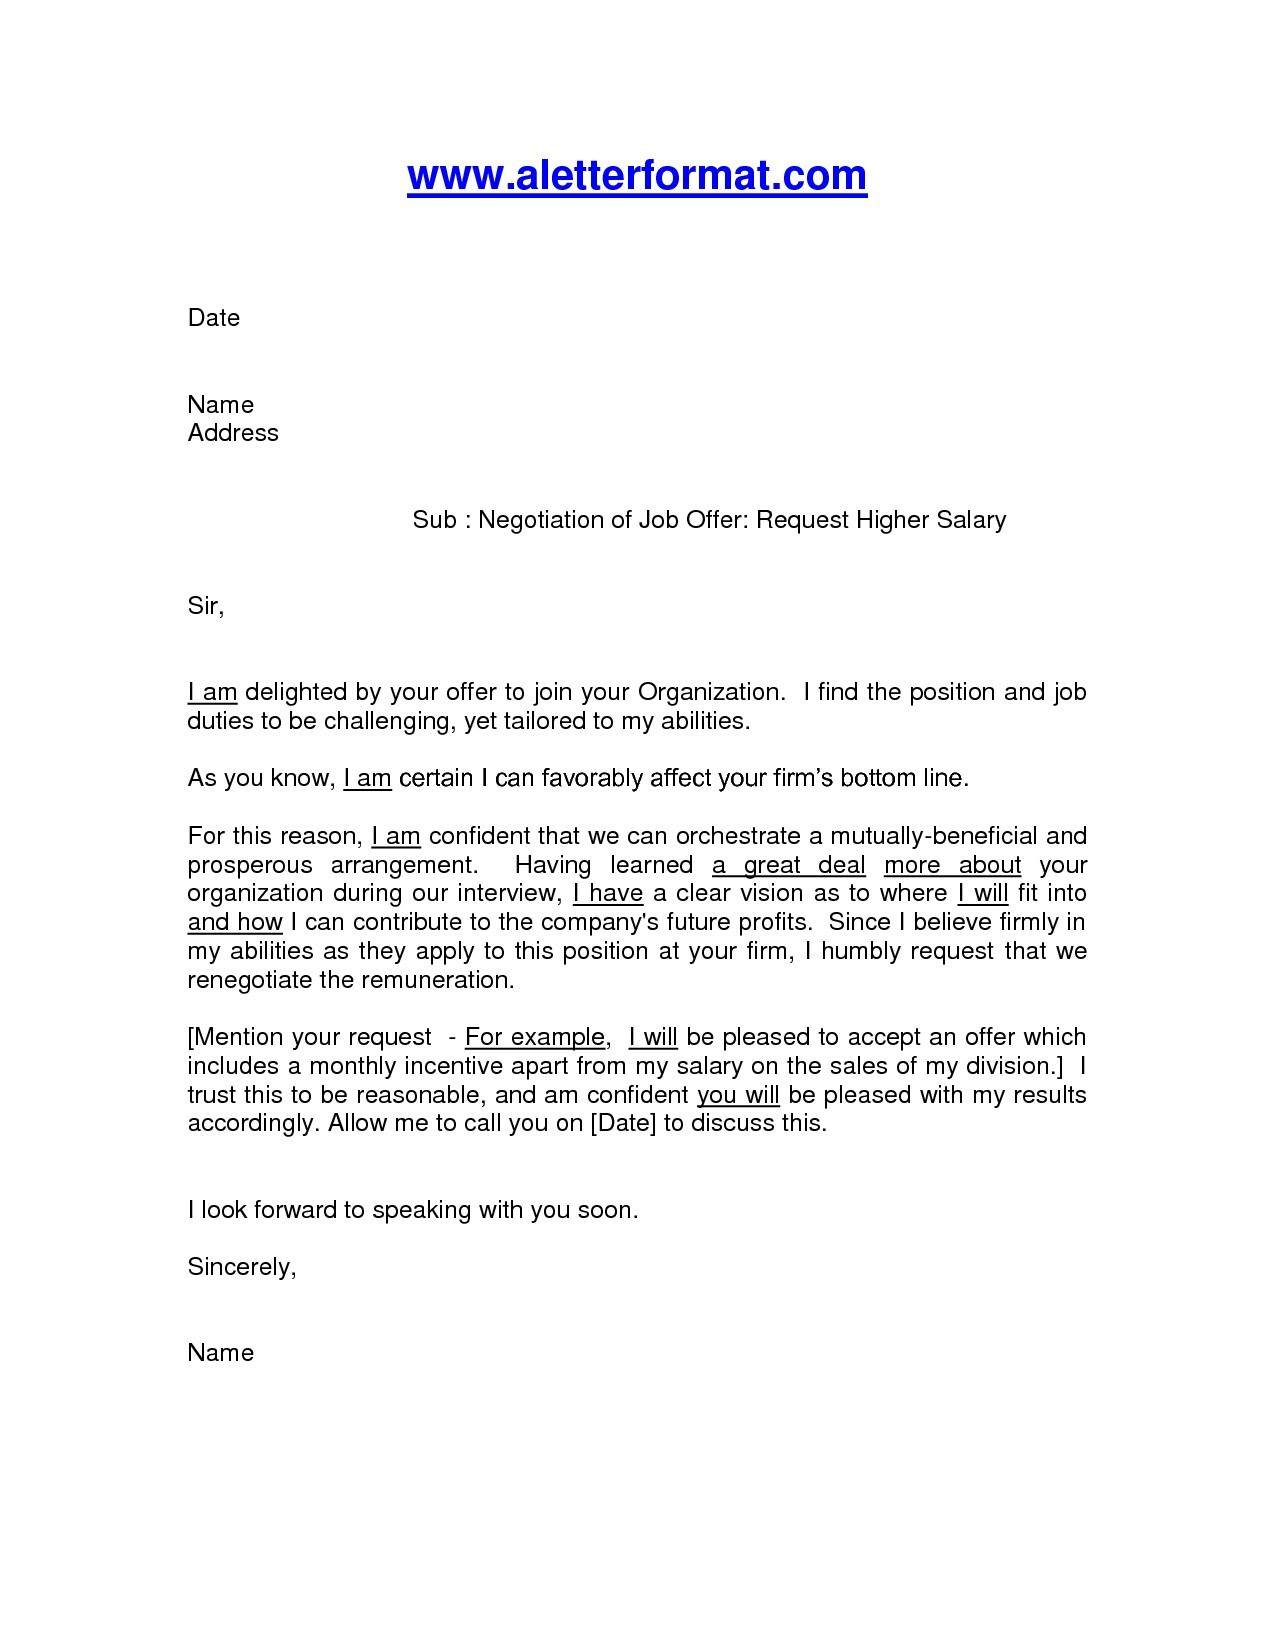 Employment Counter Offer Letter Template - Salary Negotiation Email Template